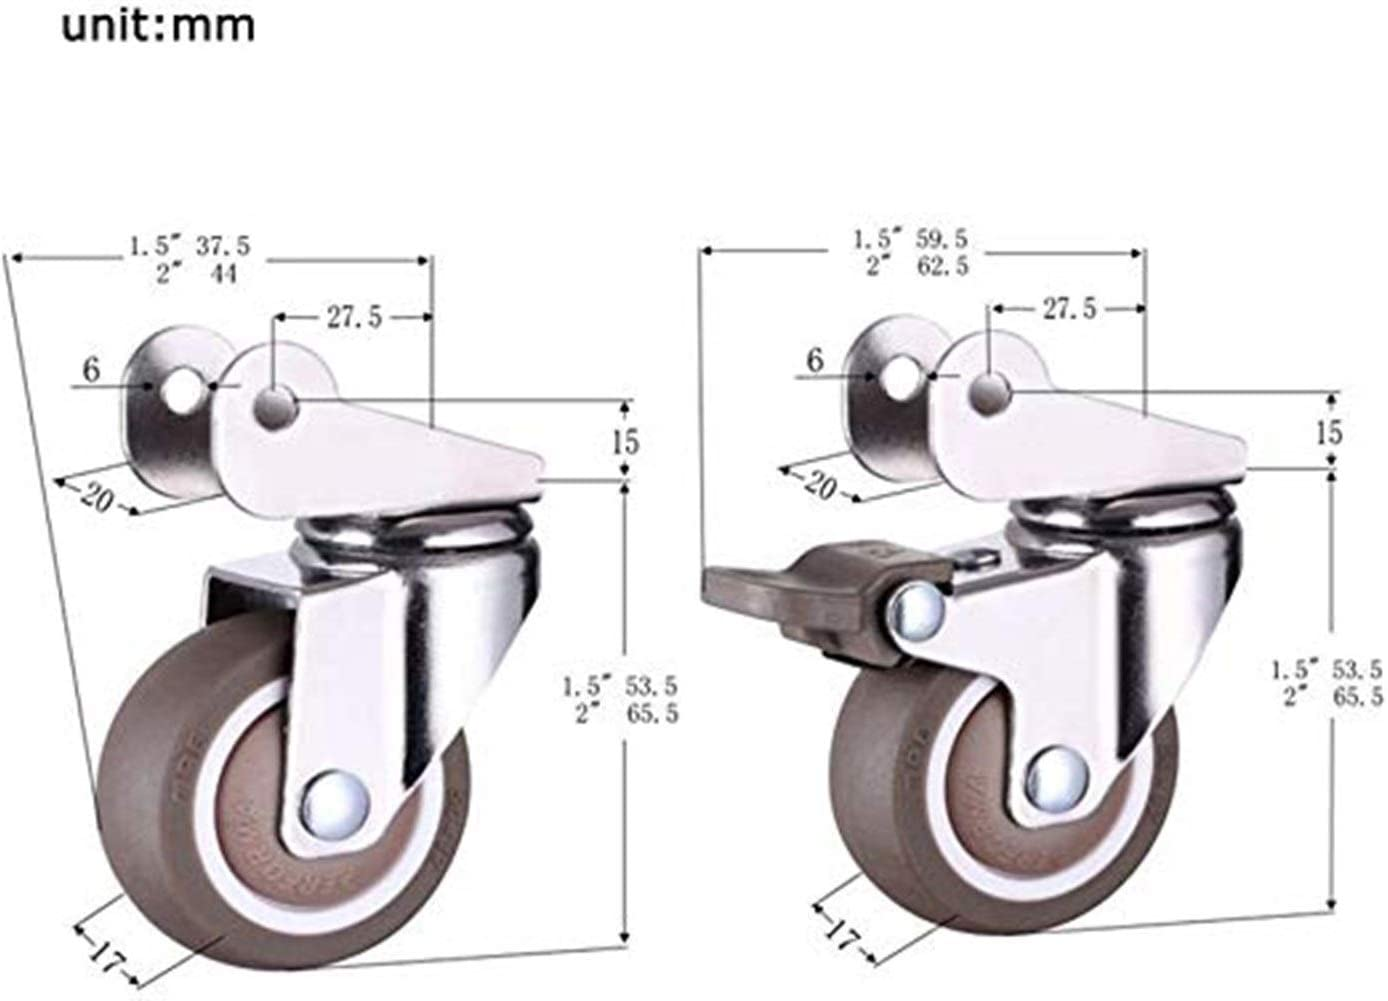 Cylficl 4PCS Rolling Silent Rubber Crib Wheels Wheels Wheel Brace Universal Swivel Brake 1.5 Inch 40mm 2 Inch 50mm Color : B, Size : 1.5in